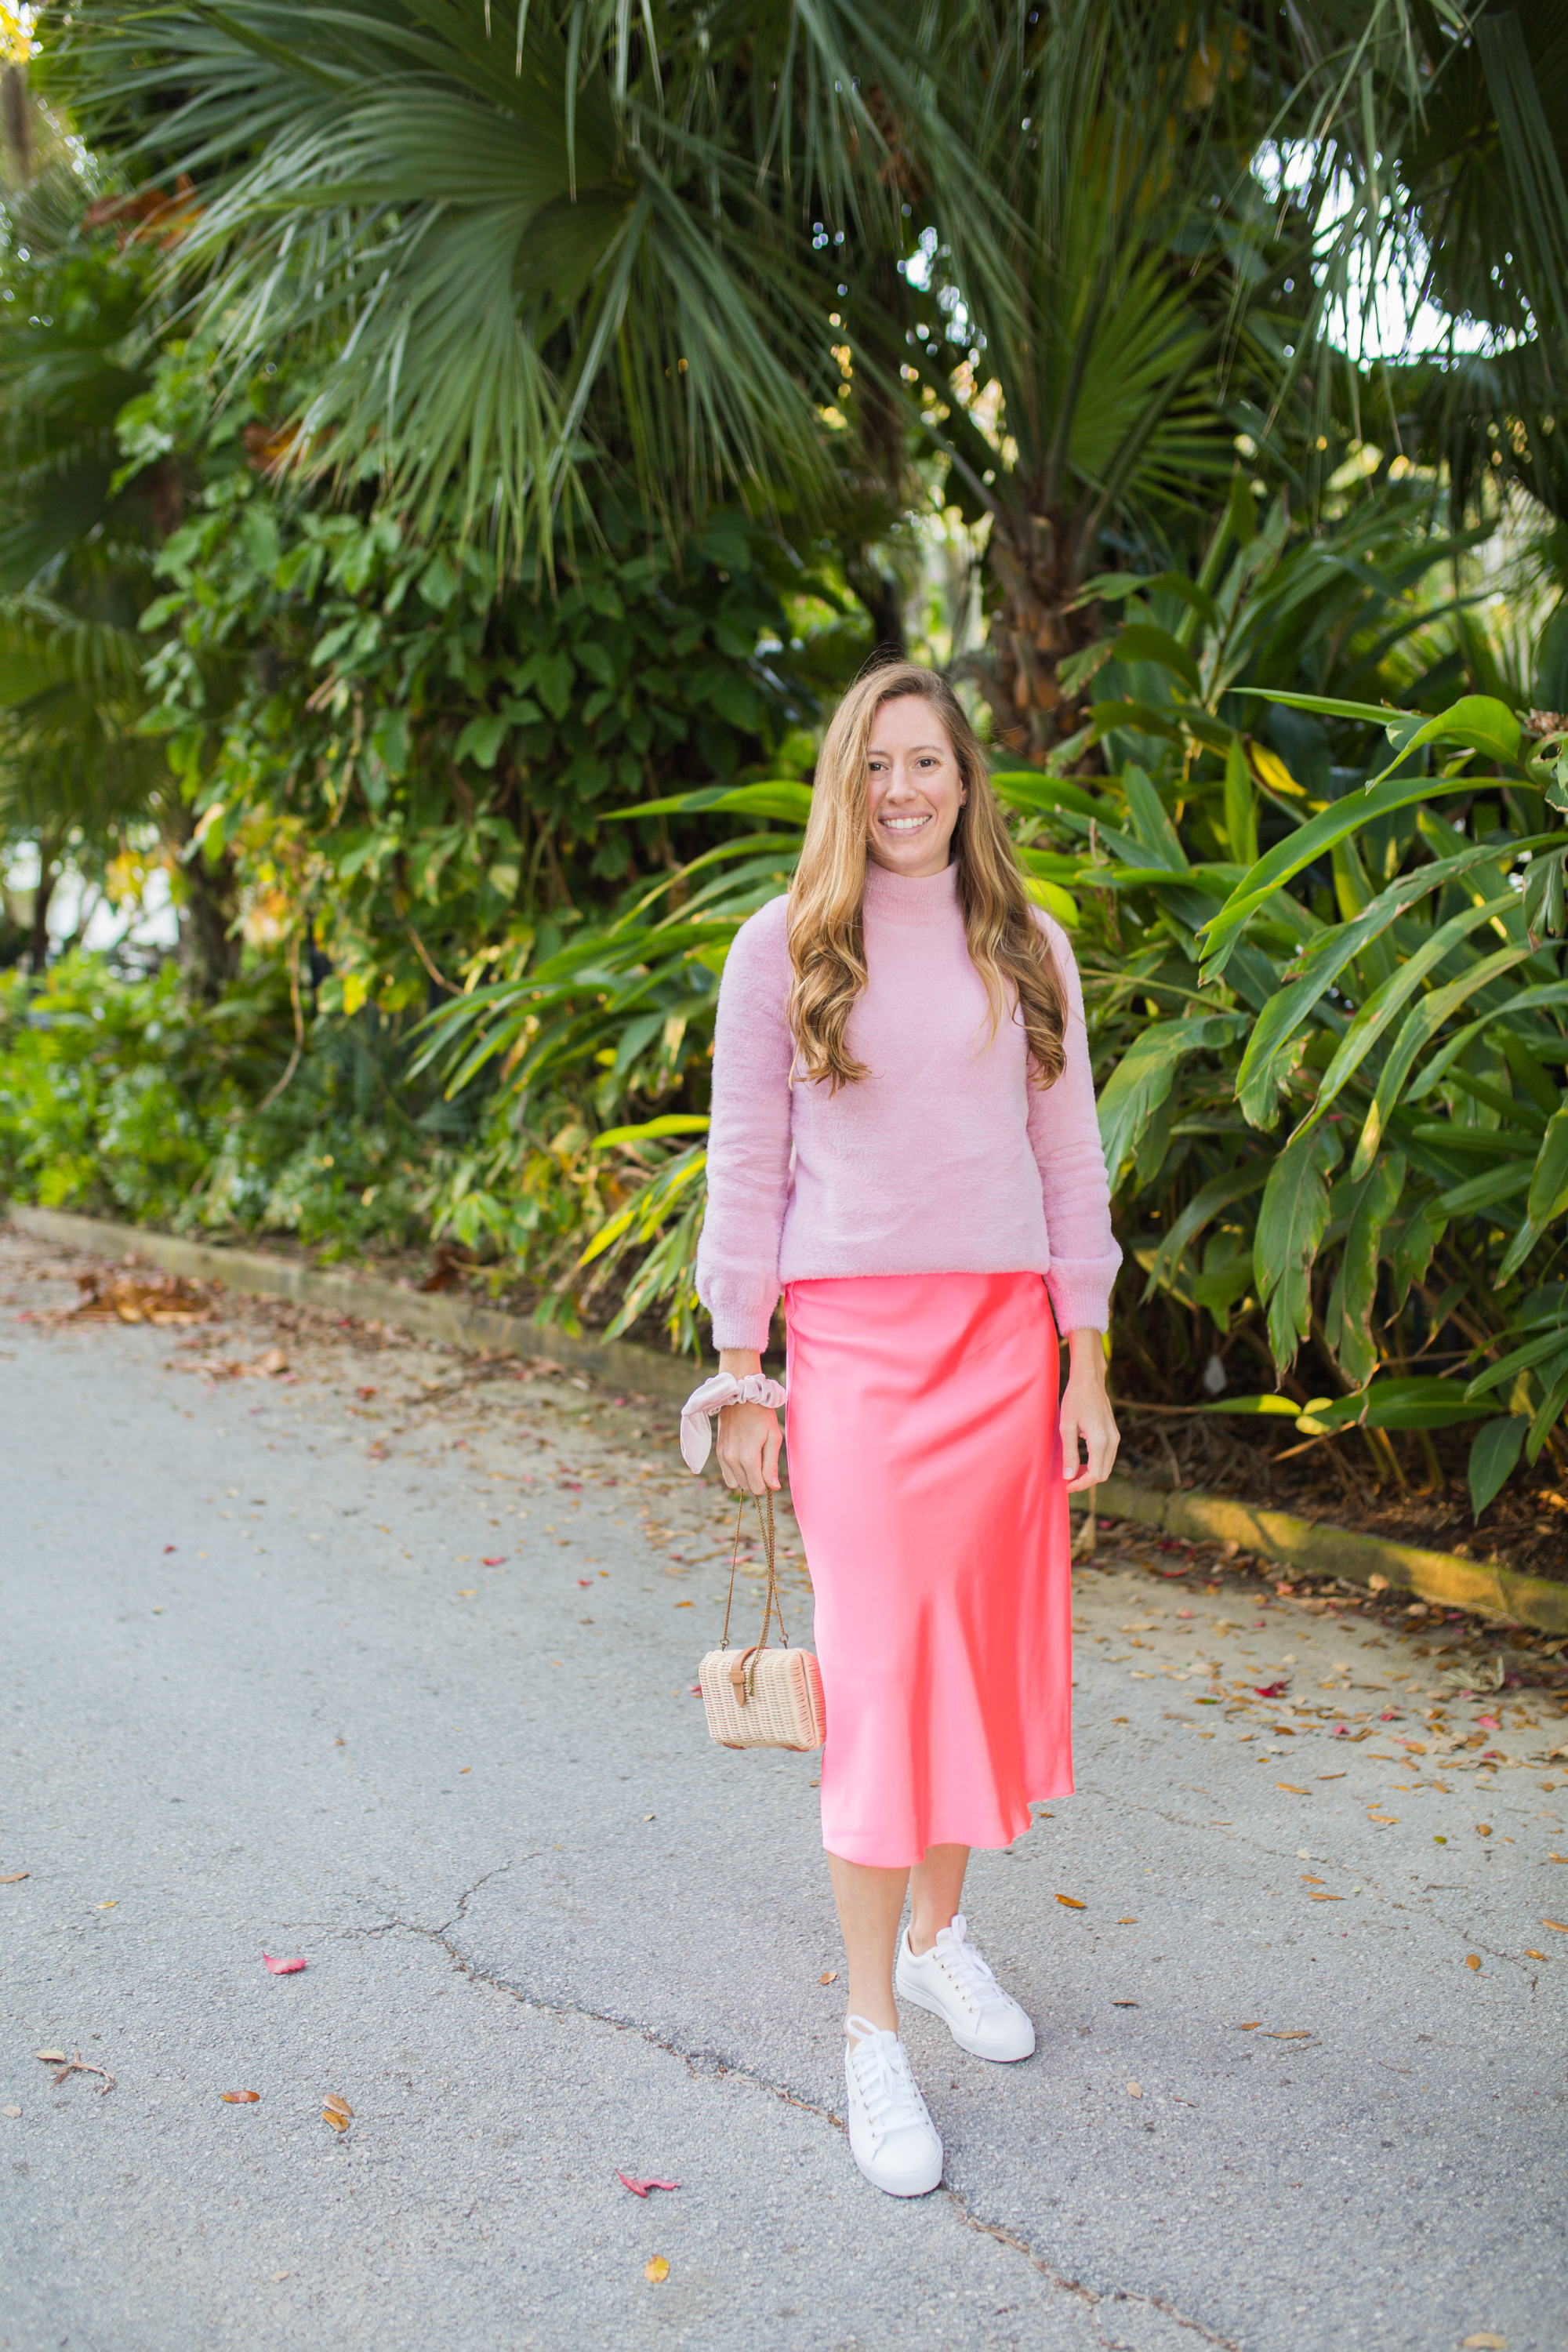 Colorful Monochromatic Winter Outfit / Winter Brights outfit / pink monochromatic outfit / bright colored outfits / pop of color outfits / silk slip skirt / white sneakers / valentines day outfit / straw bag - Sunshine Style, A Florida Fashion and Lifestyle Blog